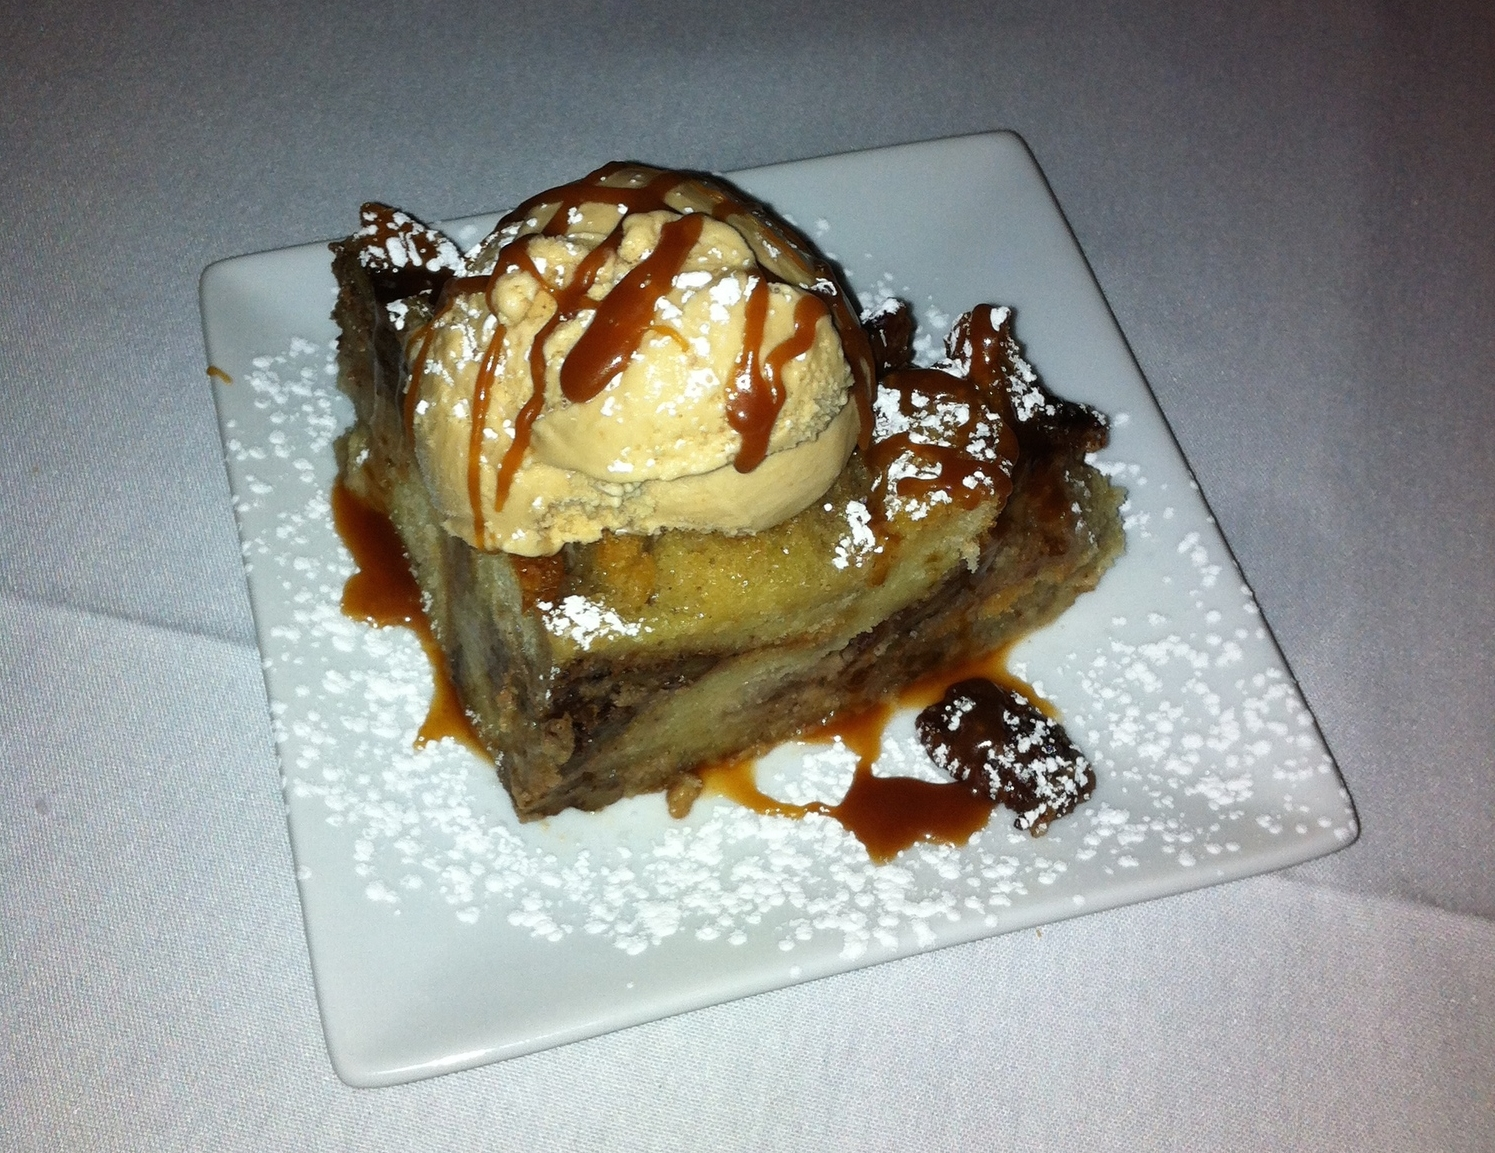 Bread pudding with homemade ice cream.